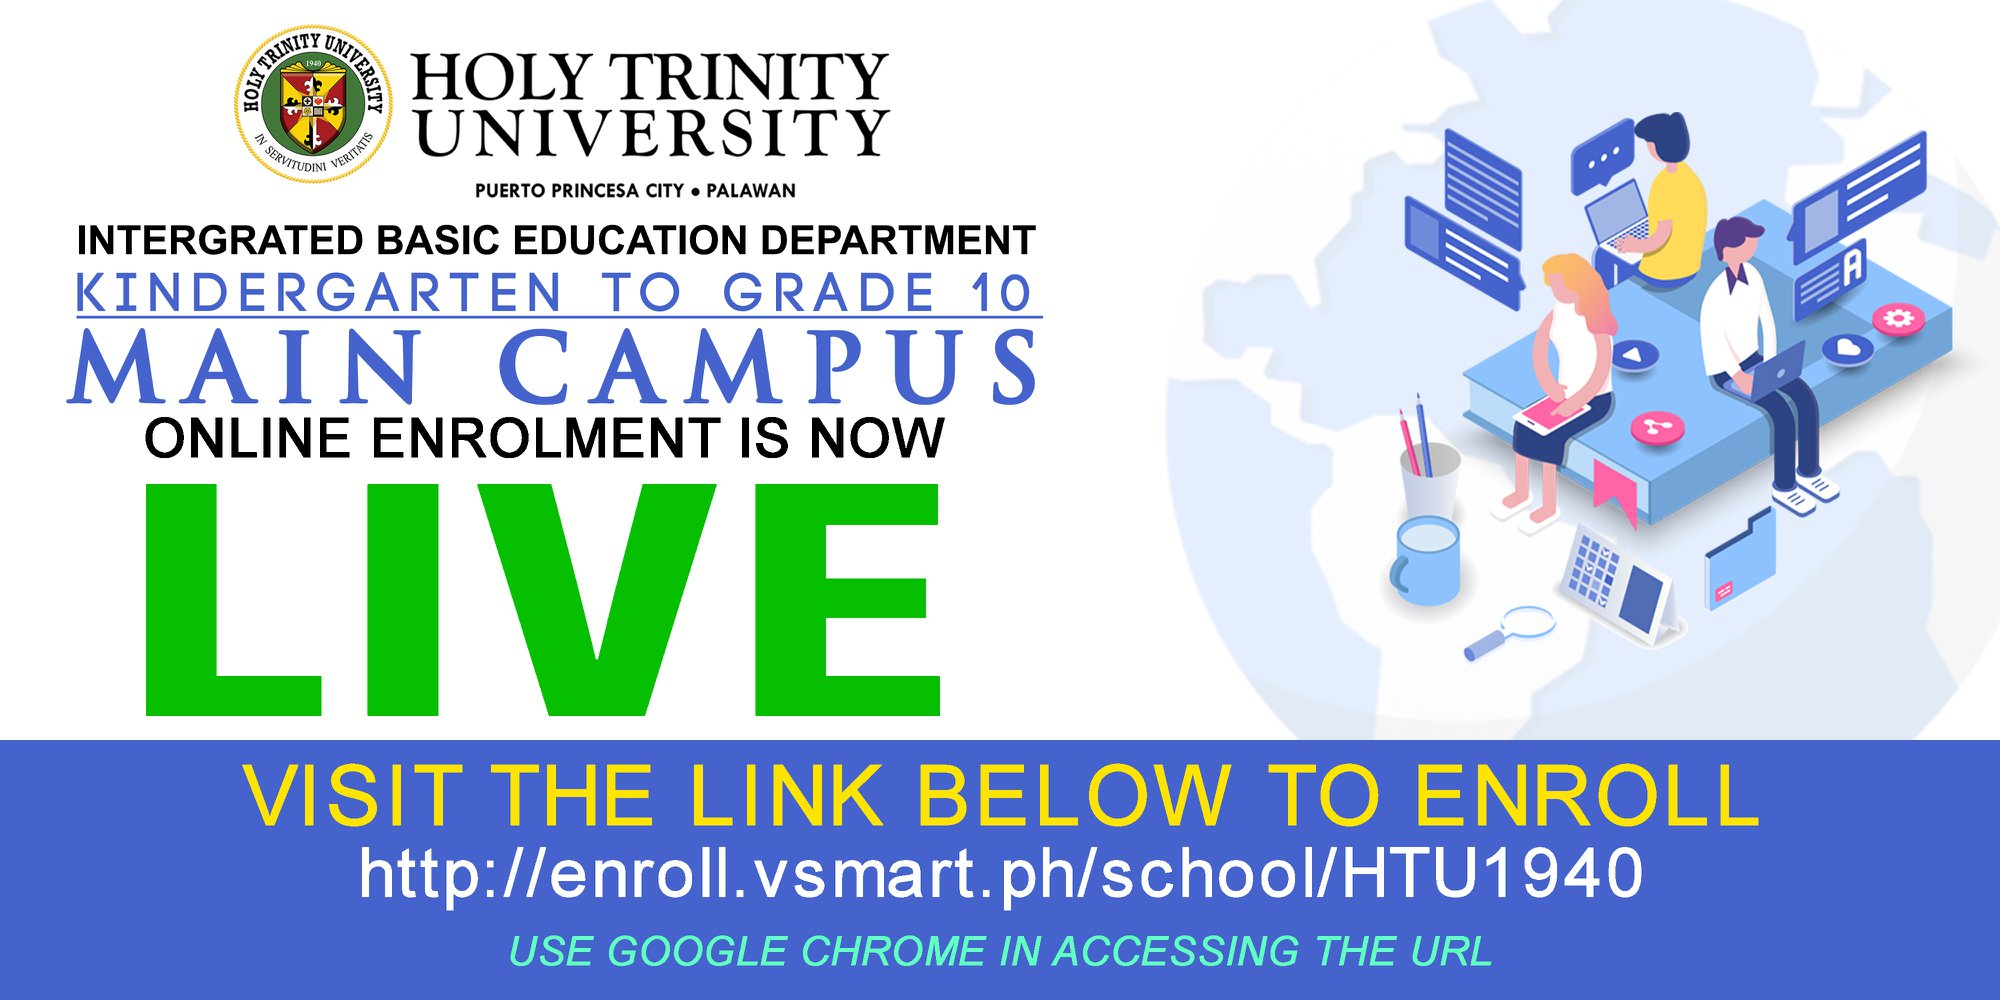 K – Grade 10 Online Enrollment for Main Campus